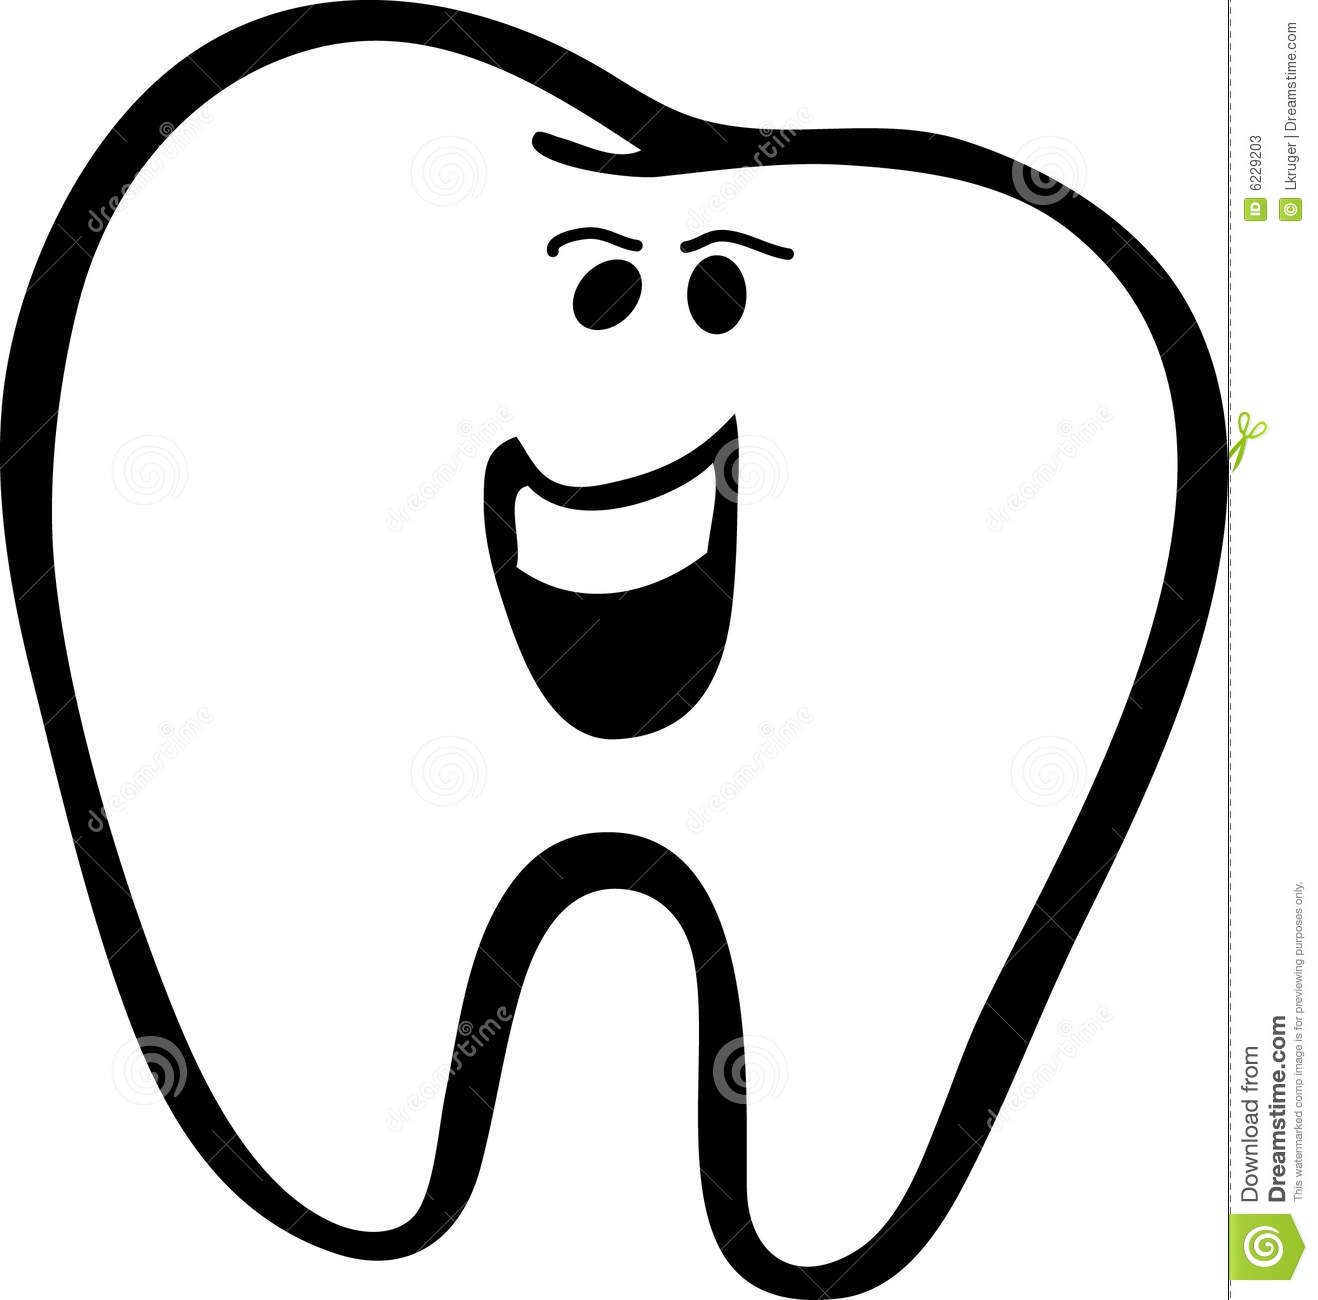 teeth clipart black and white | clipart panda - free clipart images